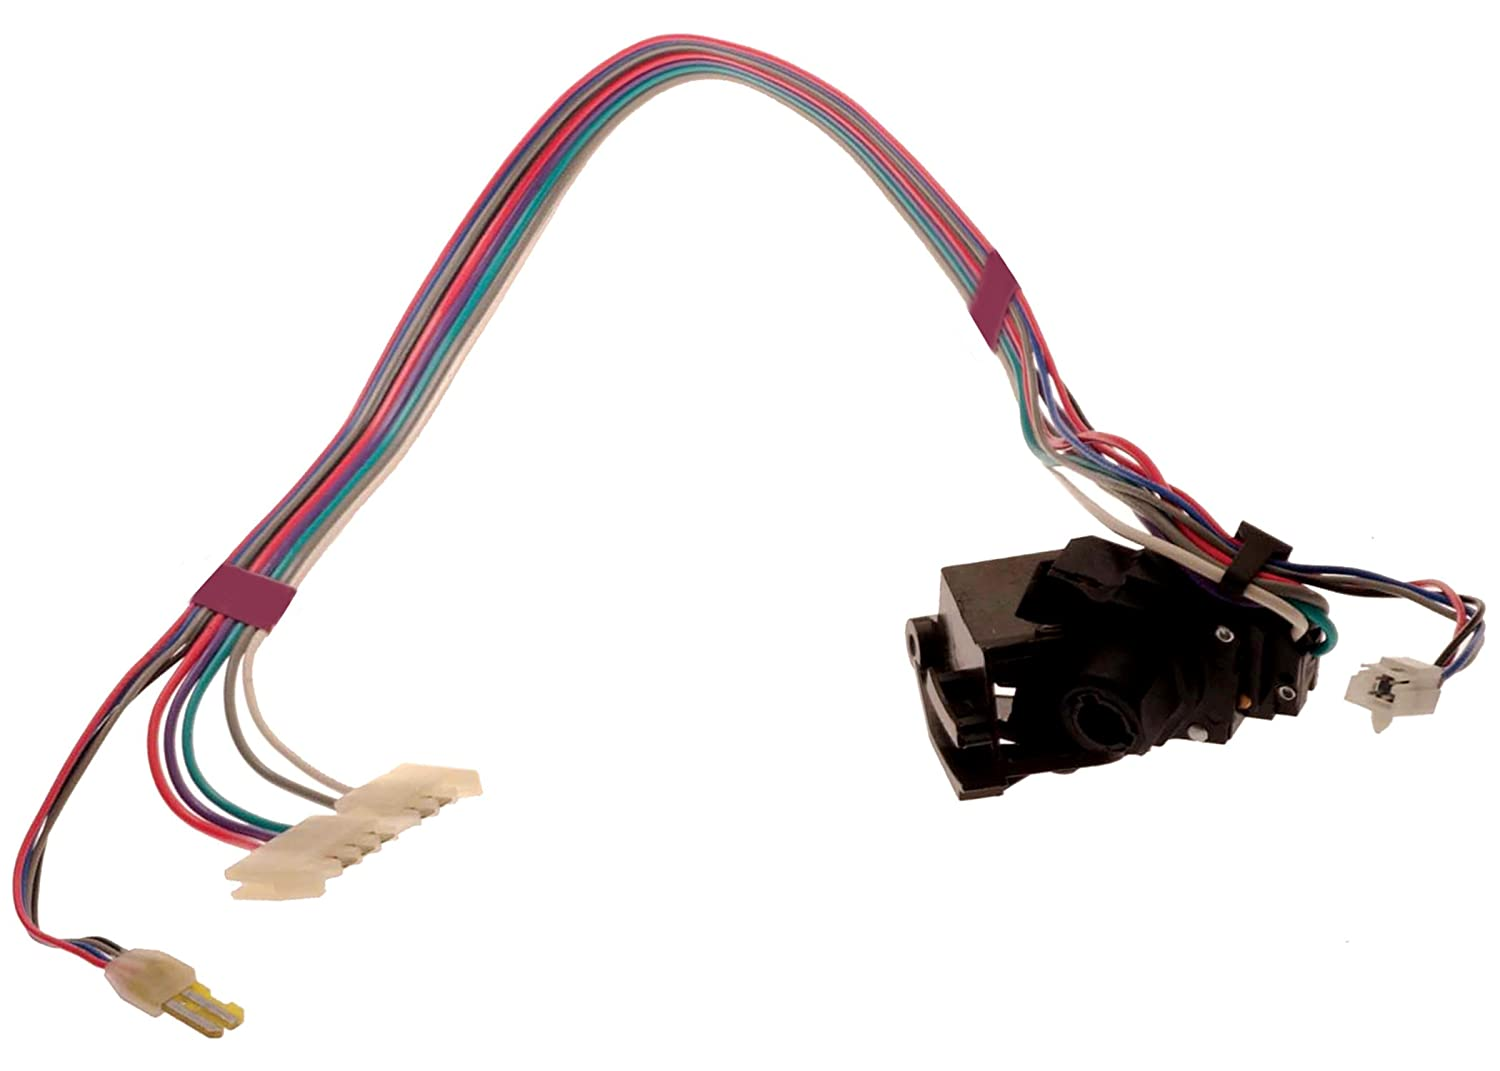 Acdelco D6395c Gm Original Equipment Windshield Wiper Wiring And Washer Switch Automotive